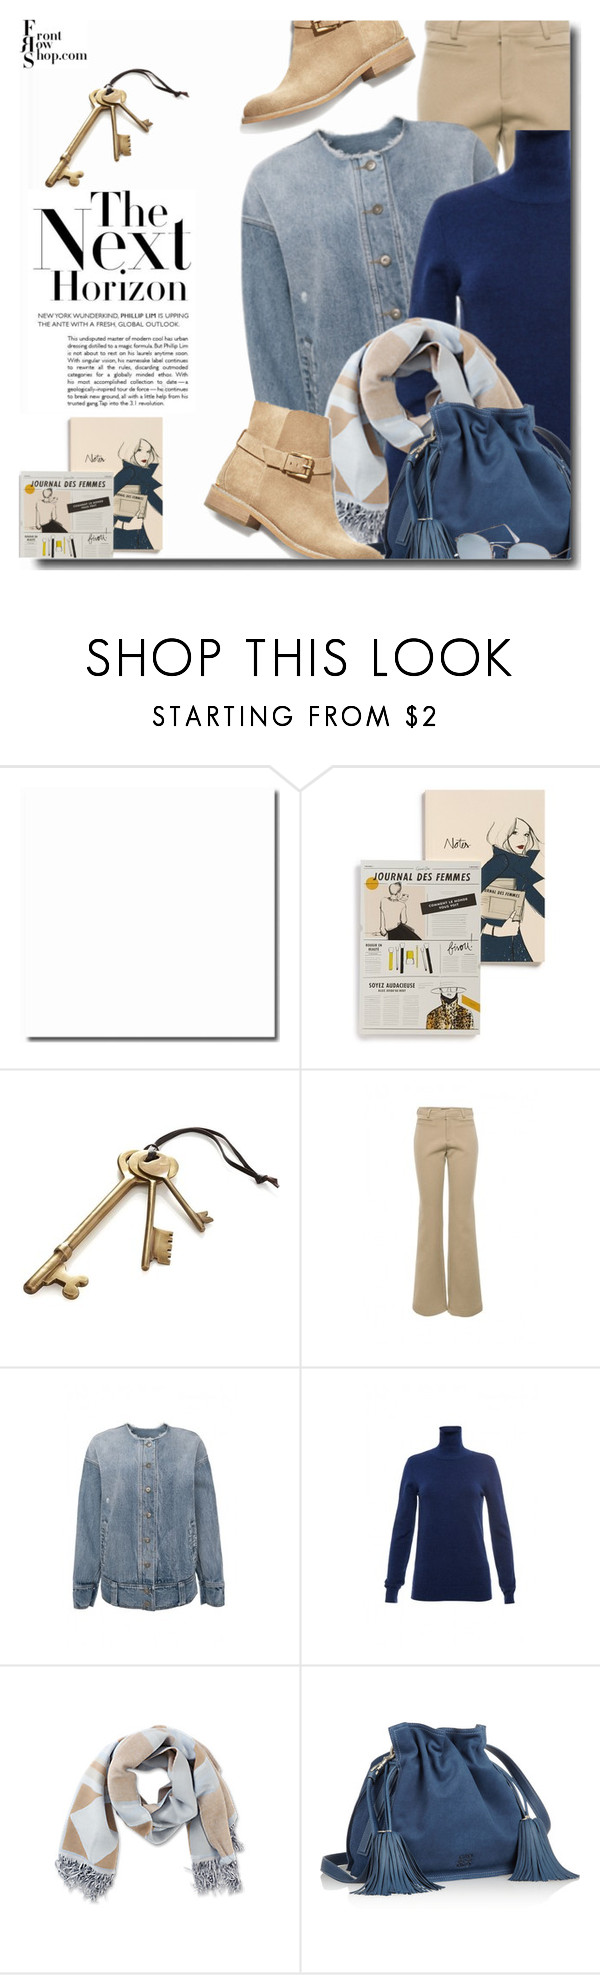 """""""Sunday comfy-front row shop 7"""" by bynoor ❤ liked on Polyvore featuring Rifle Paper Co, Front Row Shop, Crate and Barrel, Loewe, Ray-Ban, Trendy, polyvoreeditorial, styleguide and frontrowshop"""